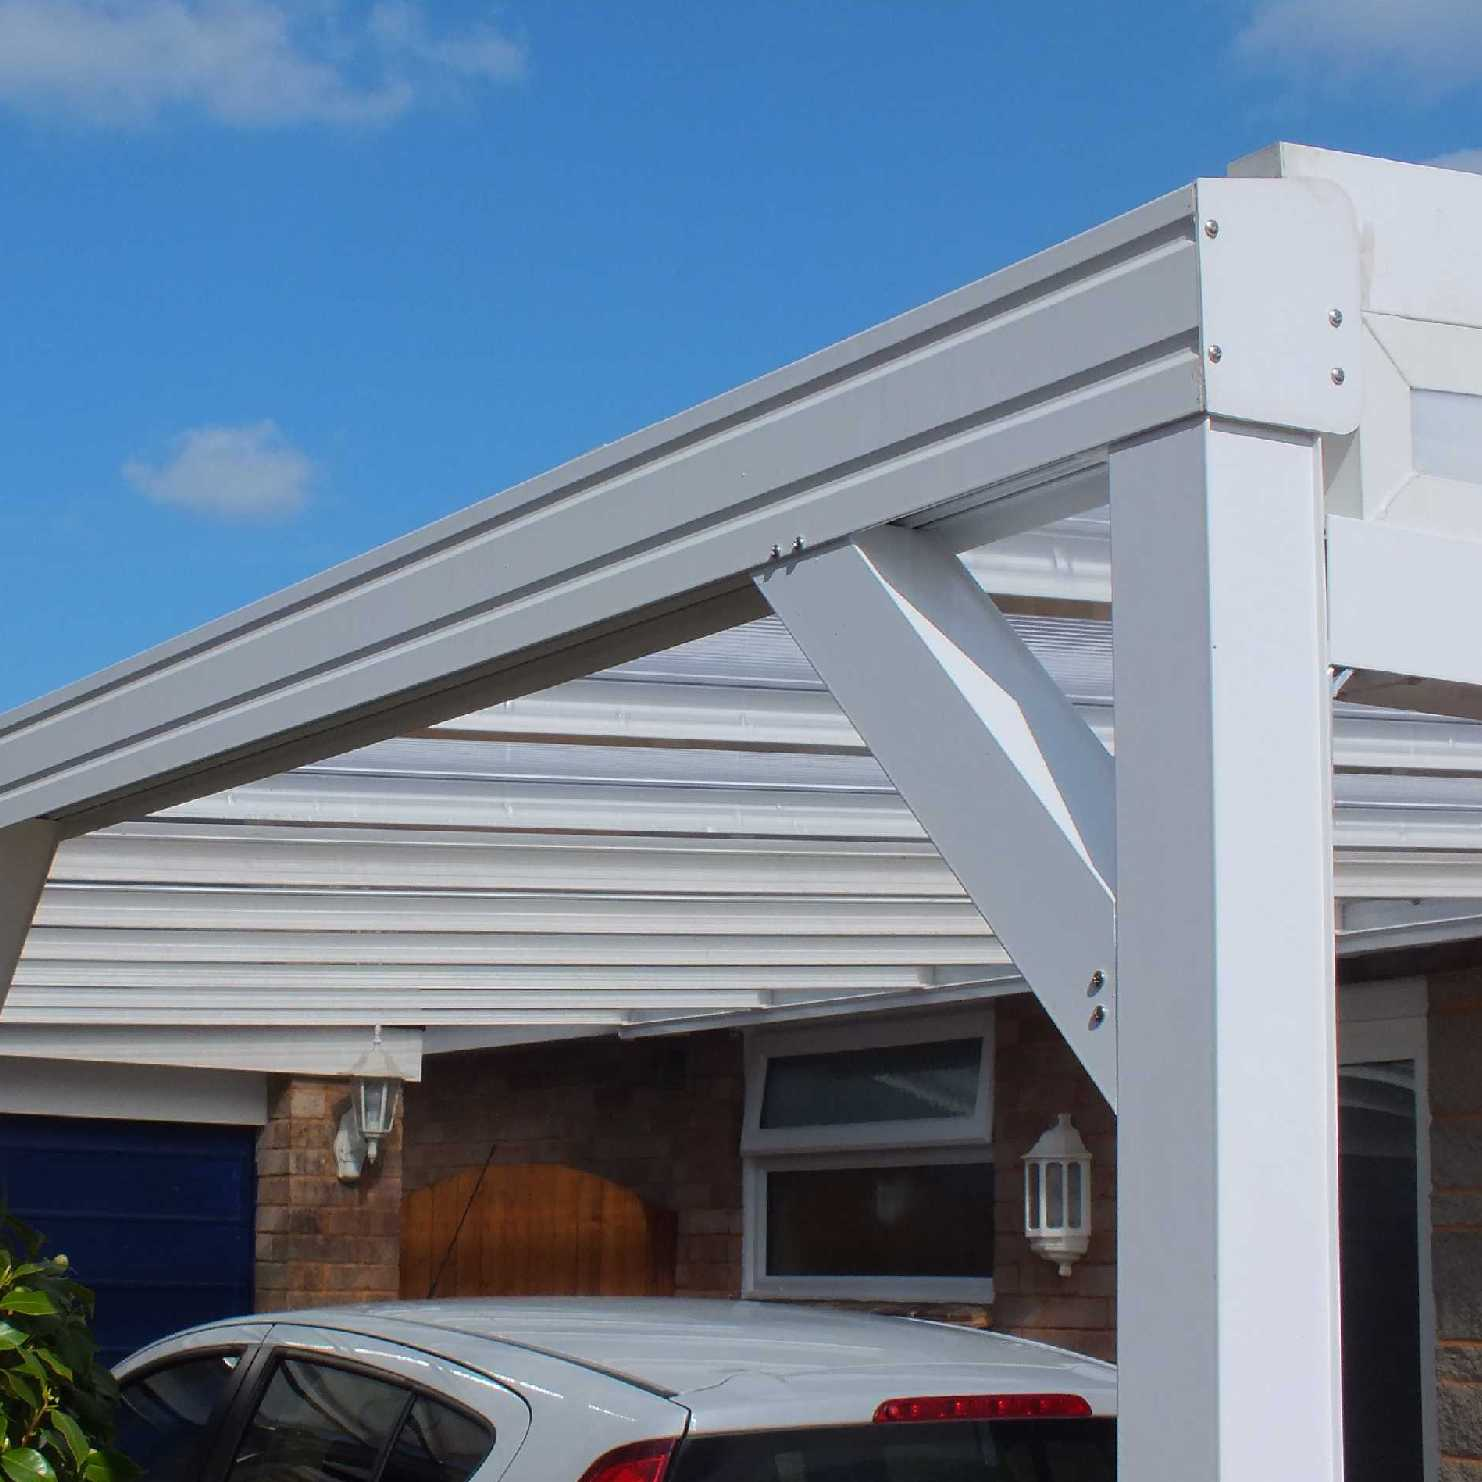 Great deals on Omega Smart White Lean-To Canopy with 16mm Polycarbonate Glazing - 5.2m (W) x 2.5m (P), (3) Supporting Posts